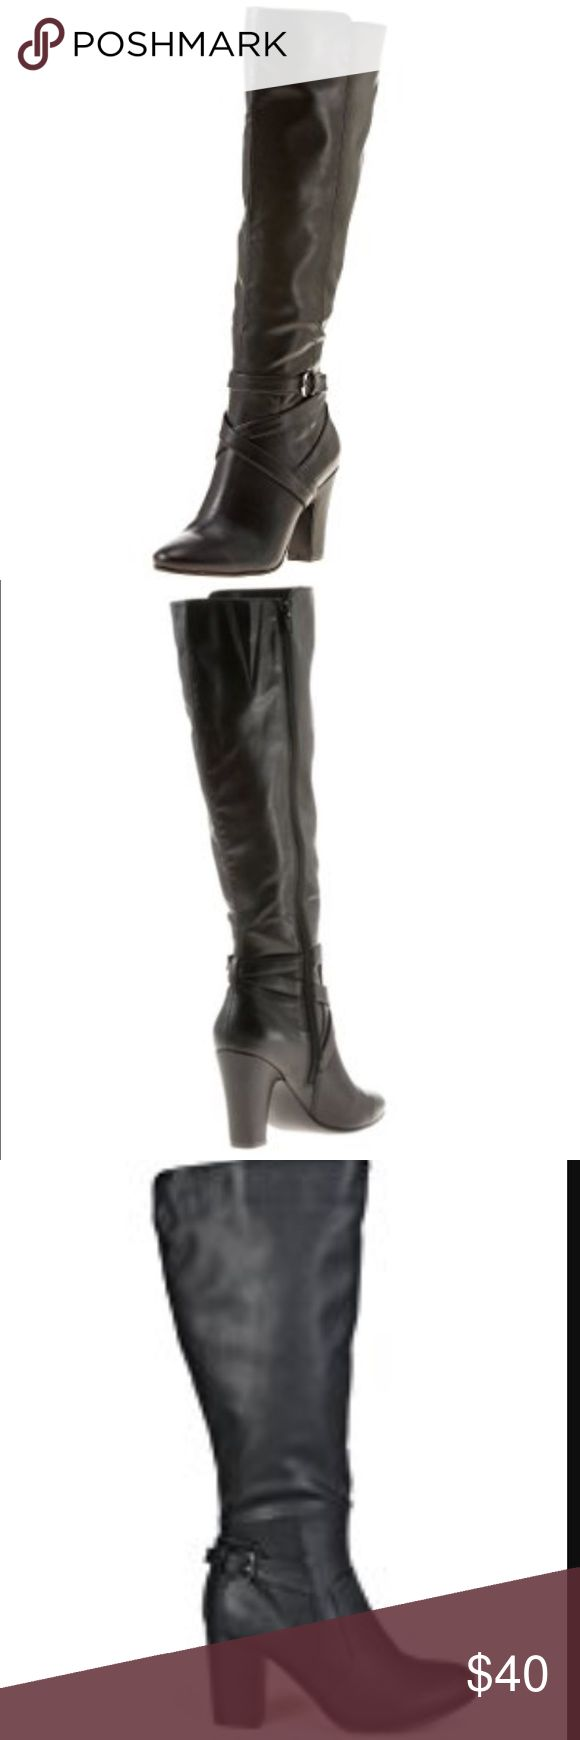 "💃🏾Tall Ladies Heeled Boot Features 31/2"" block heel, 14"" shaft height, 151/2"" calf/shaft circumference Closed almond toe, Closed back Full-length zipper closure at inner side of shaft, Crisscrossed instep strap details with adjustable buckle strap at lower end of shaft Lightly padded footbed, Synthetic upper Purchase by 4:00 pm Central Time for same day shipping. Rampage Shoes Heeled Boots"